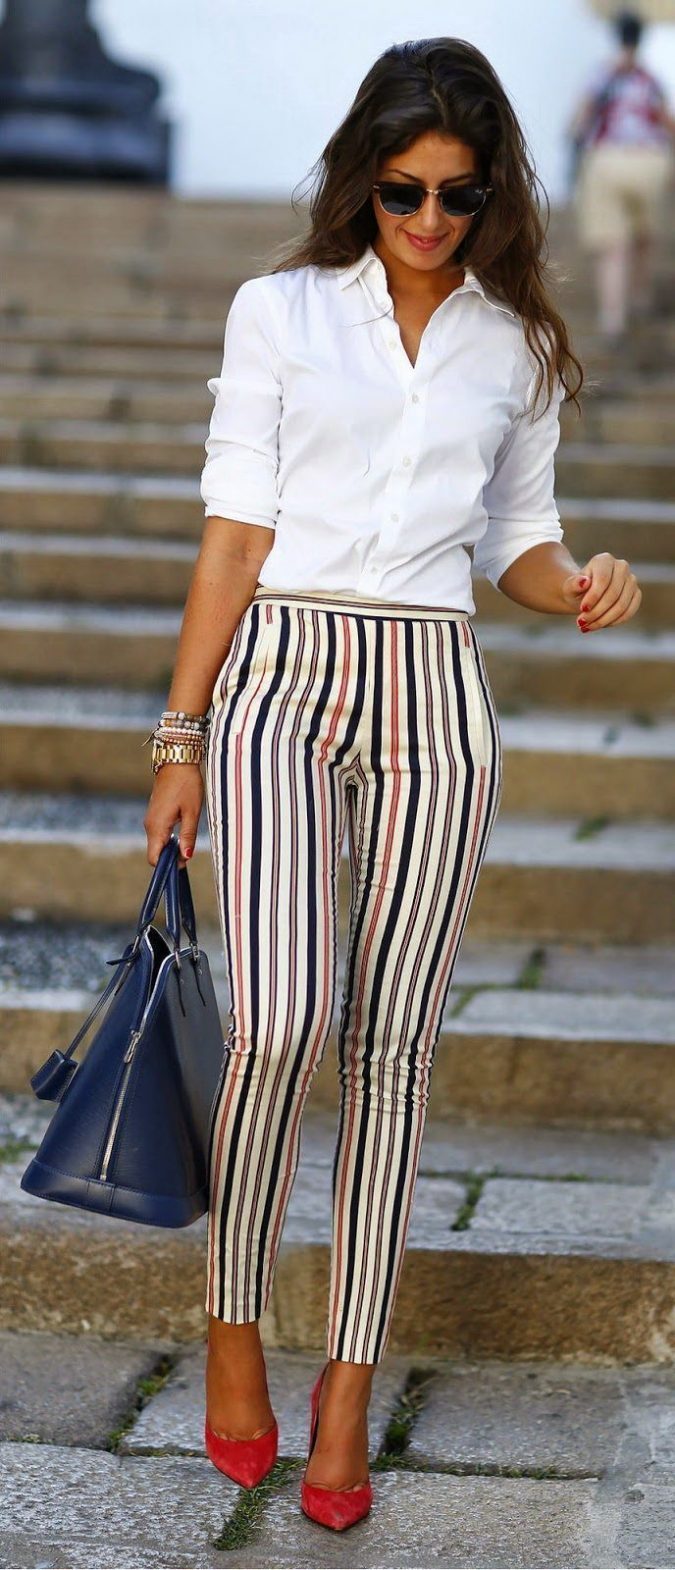 Stripes9-675x1570 6 Hottest Fashion Trends of Spring & Summer 2020